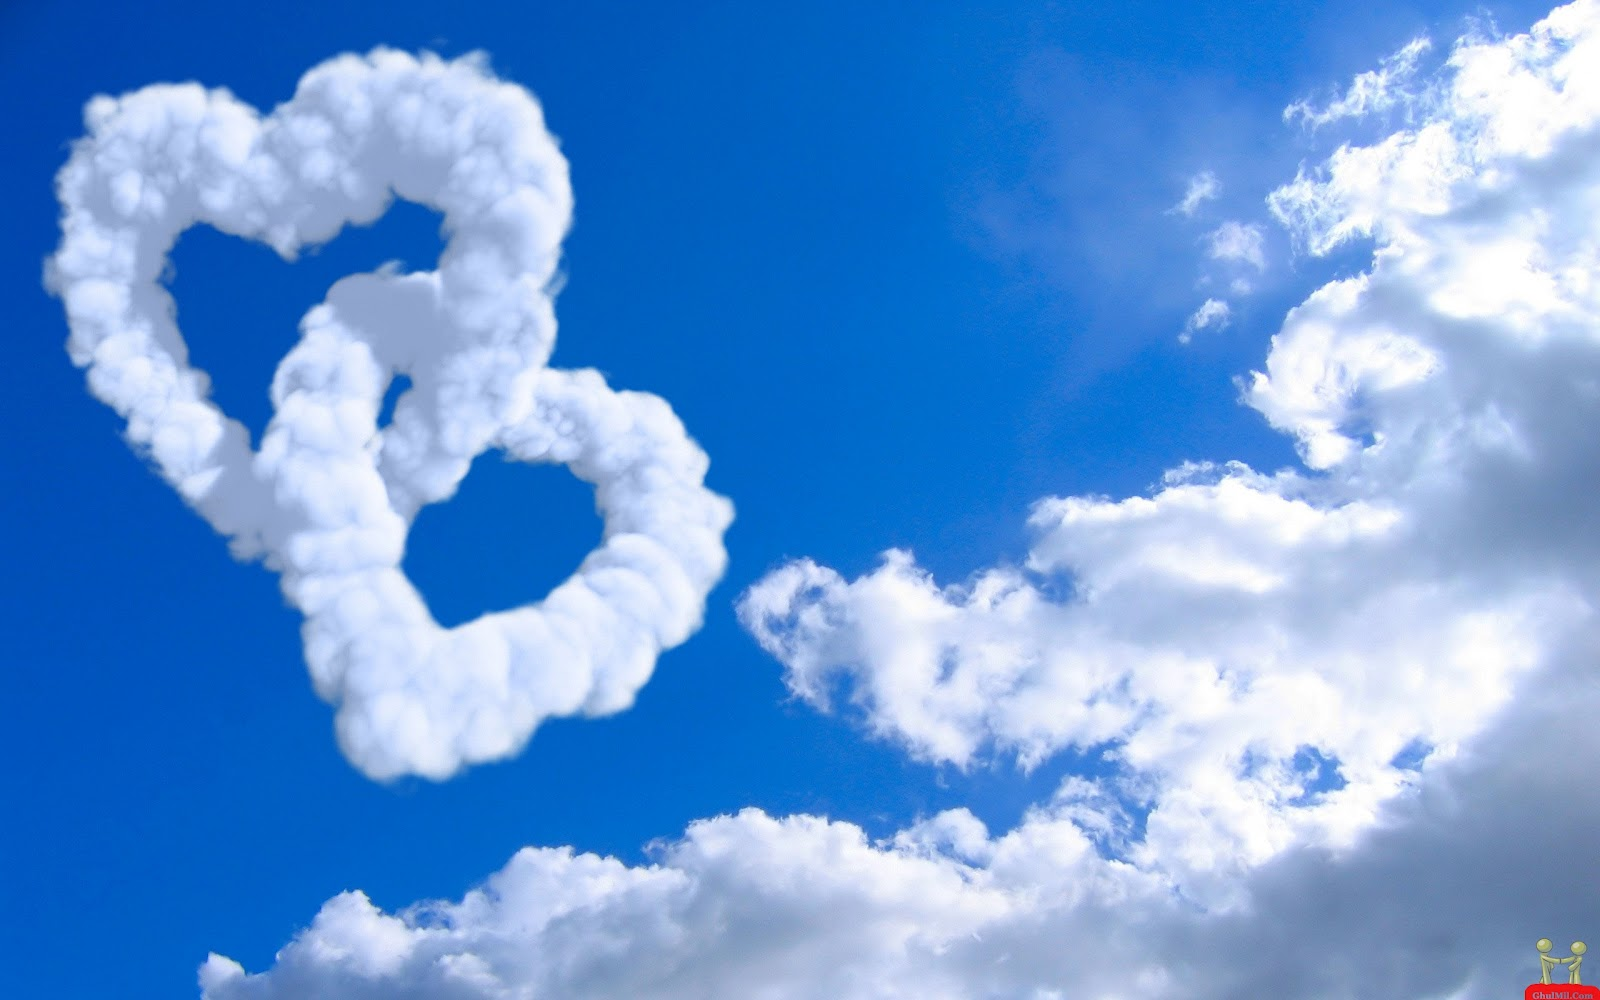 http://4.bp.blogspot.com/-jWbeSfSAKYA/T5VXedrrg5I/AAAAAAAAALM/a0XlQT4msP4/s1600/valentines-day-love-on-sky-heart-wallpaper.jpg